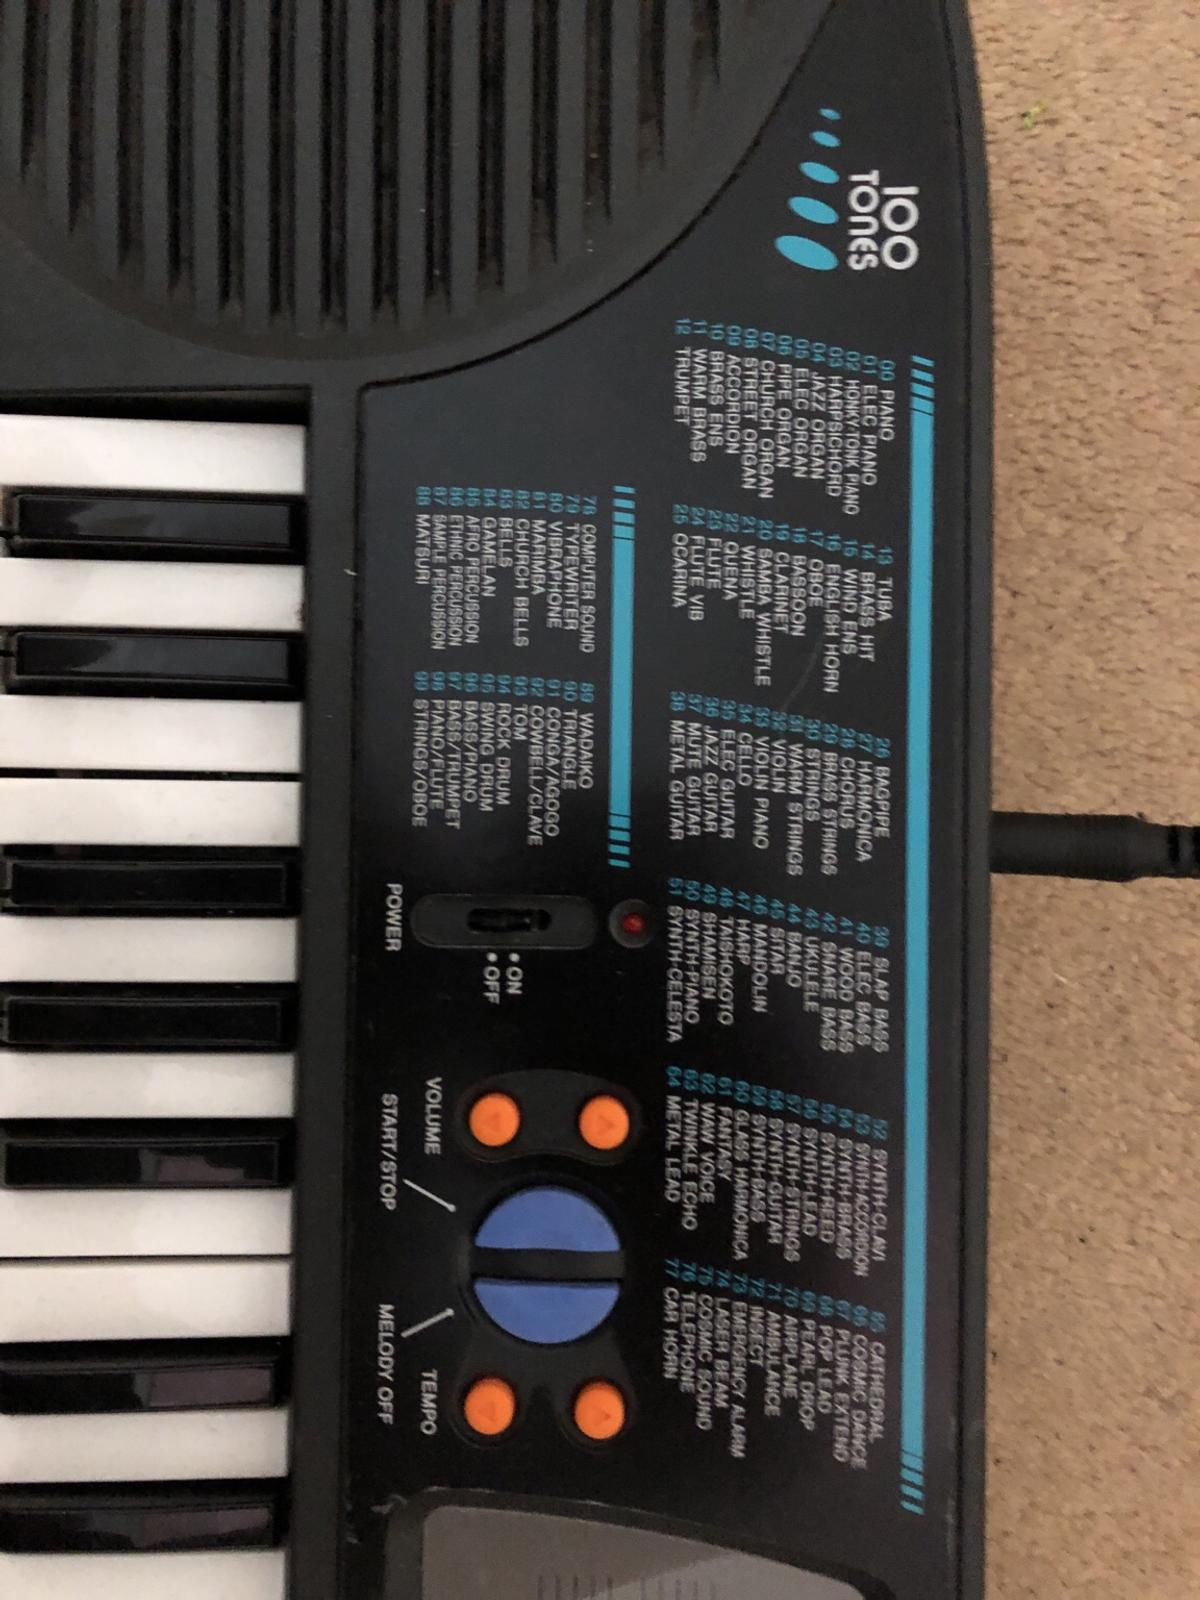 Casio keyboard in CV11 Nuneaton and Bedworth for £5 00 for sale - Shpock